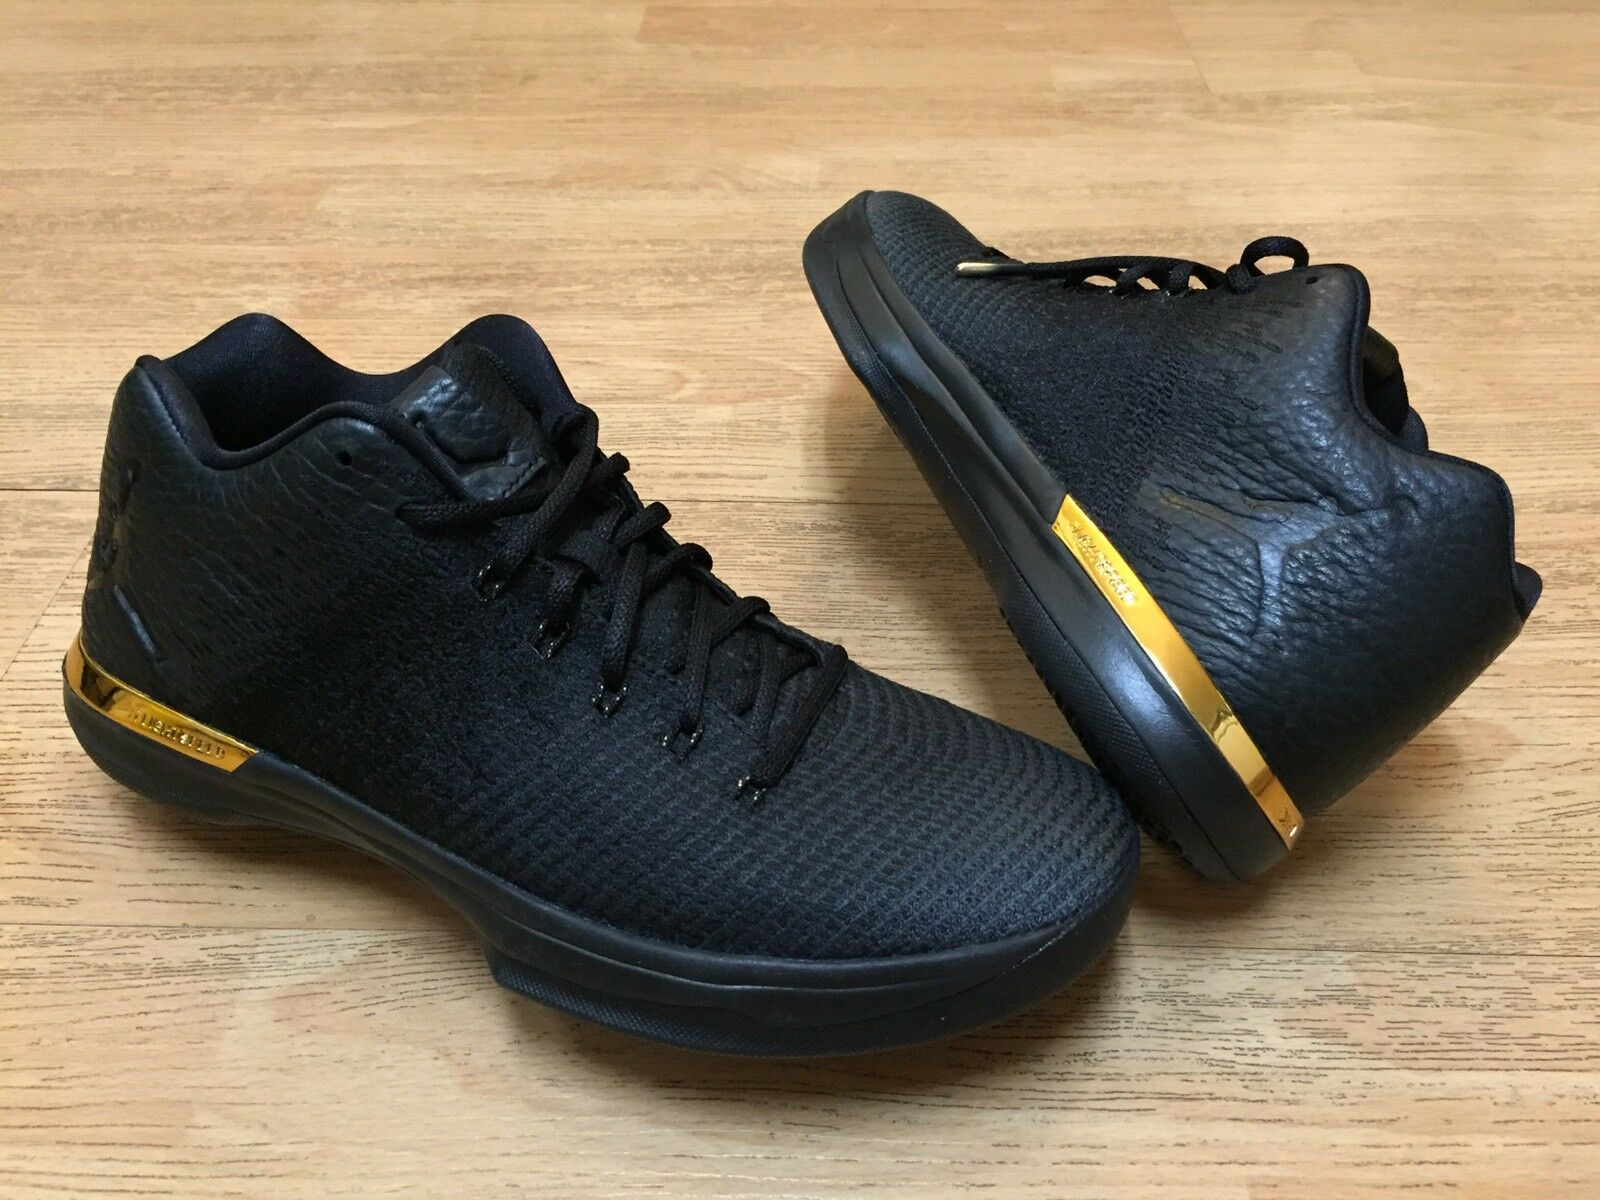 NIKE AIR JORDAN XXXI 31 TRIPLE BLACK TROPHY GOLD BASKETBALL SHOES 7 7Y Women 8.5